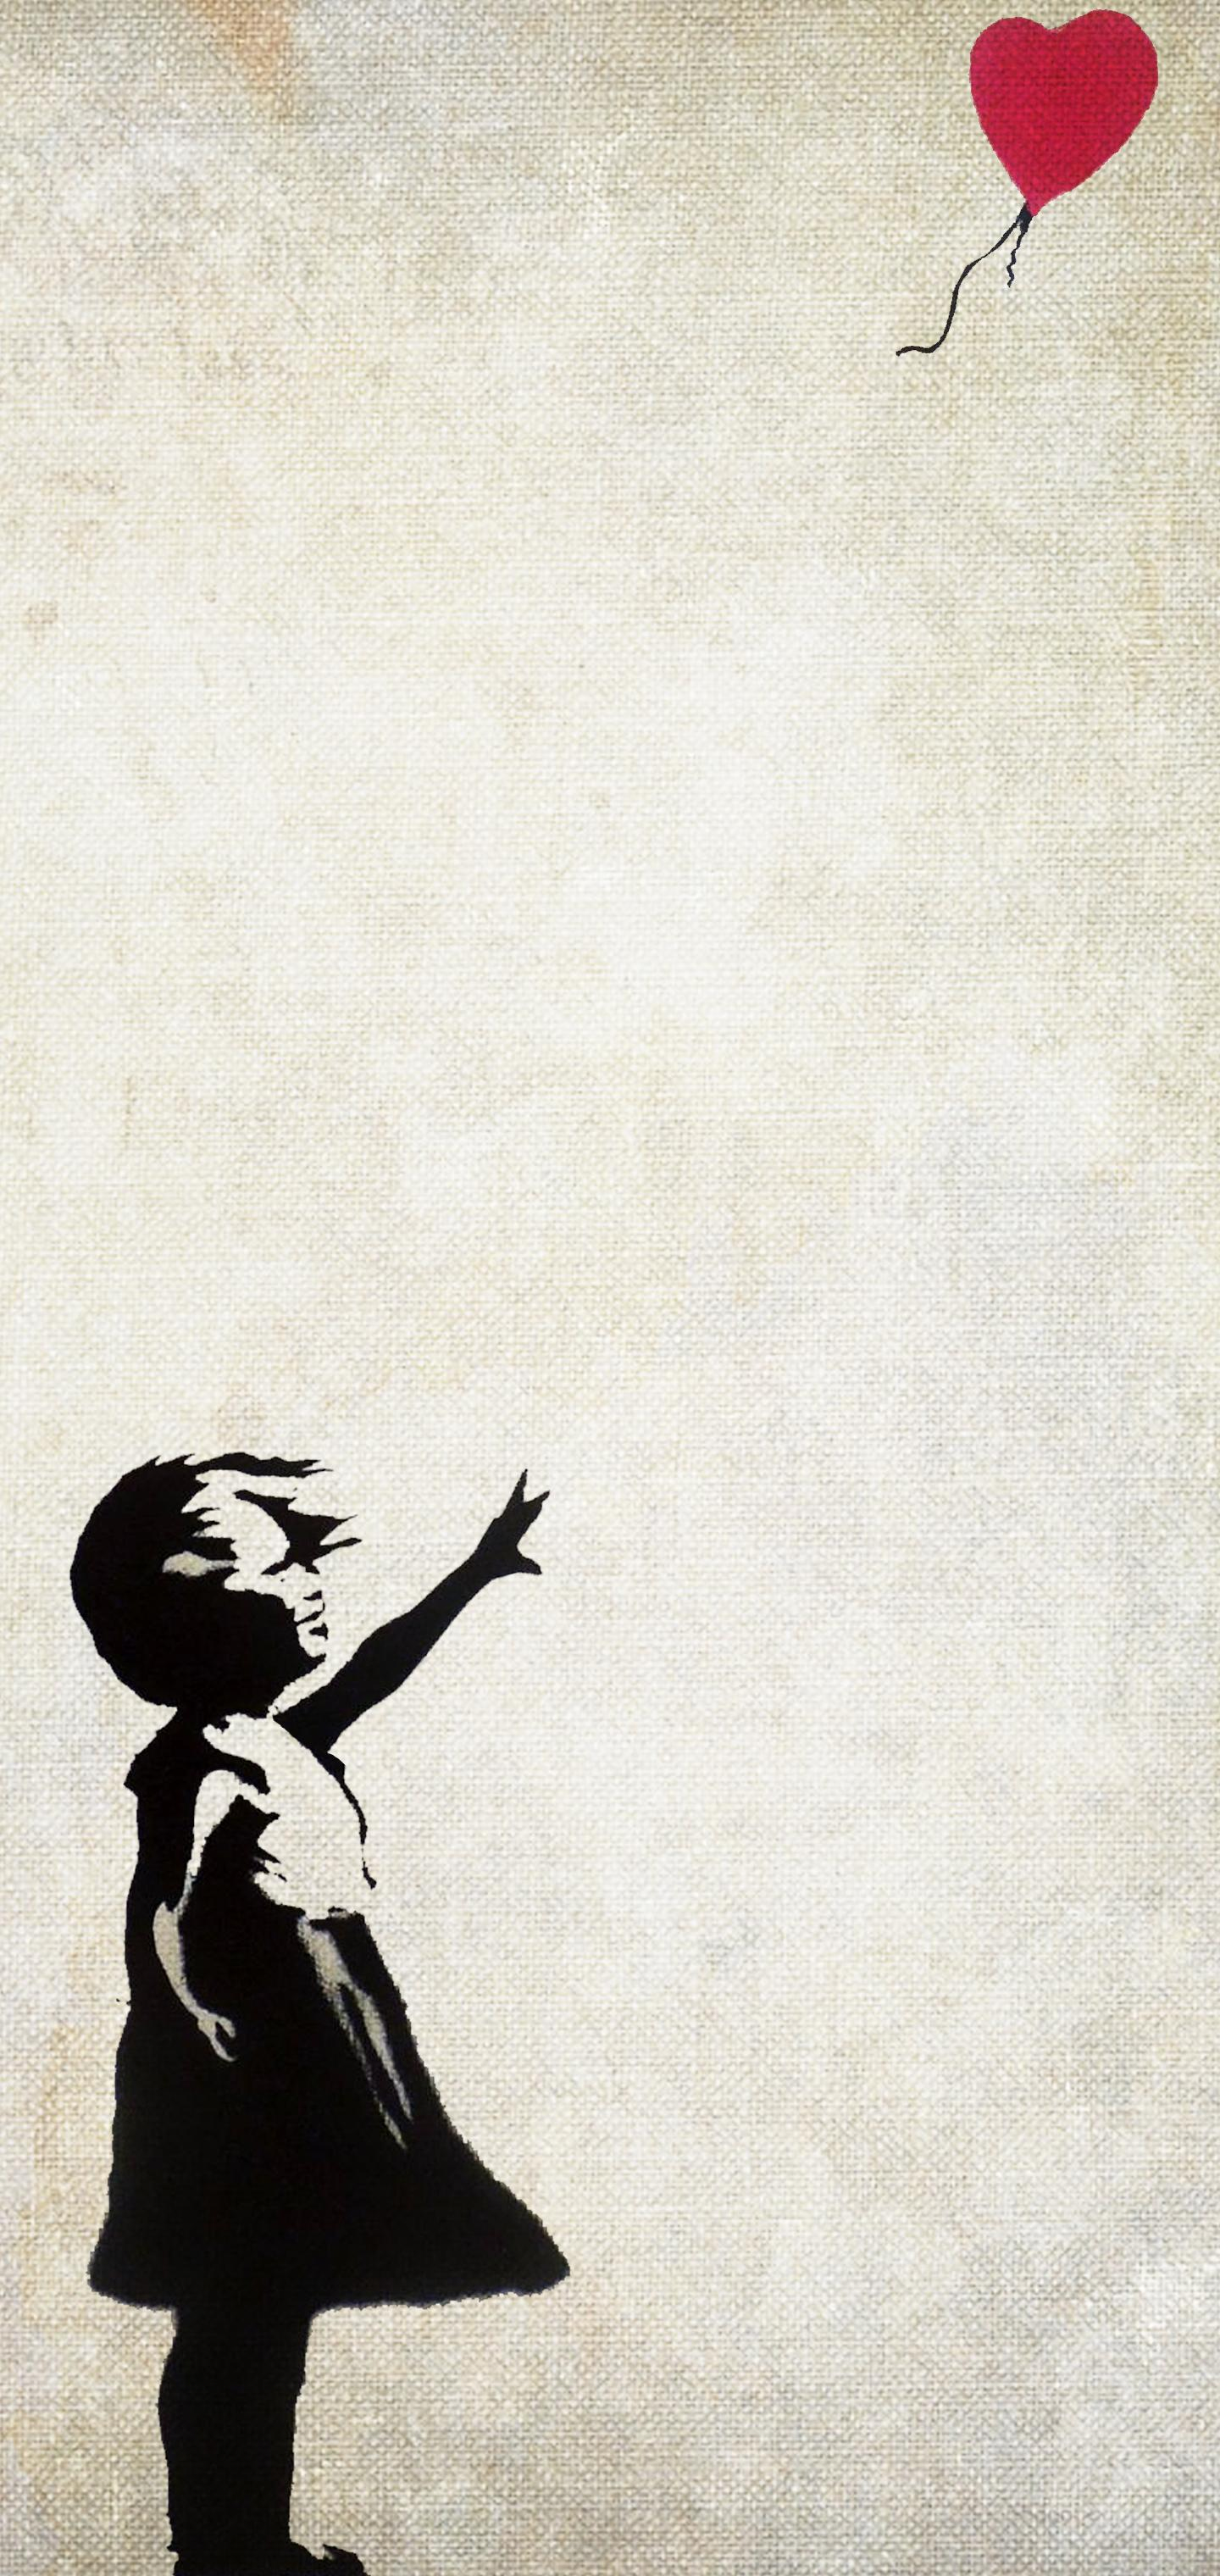 Banksy Iphone Wallpapers Top Free Banksy Iphone Backgrounds Wallpaperaccess